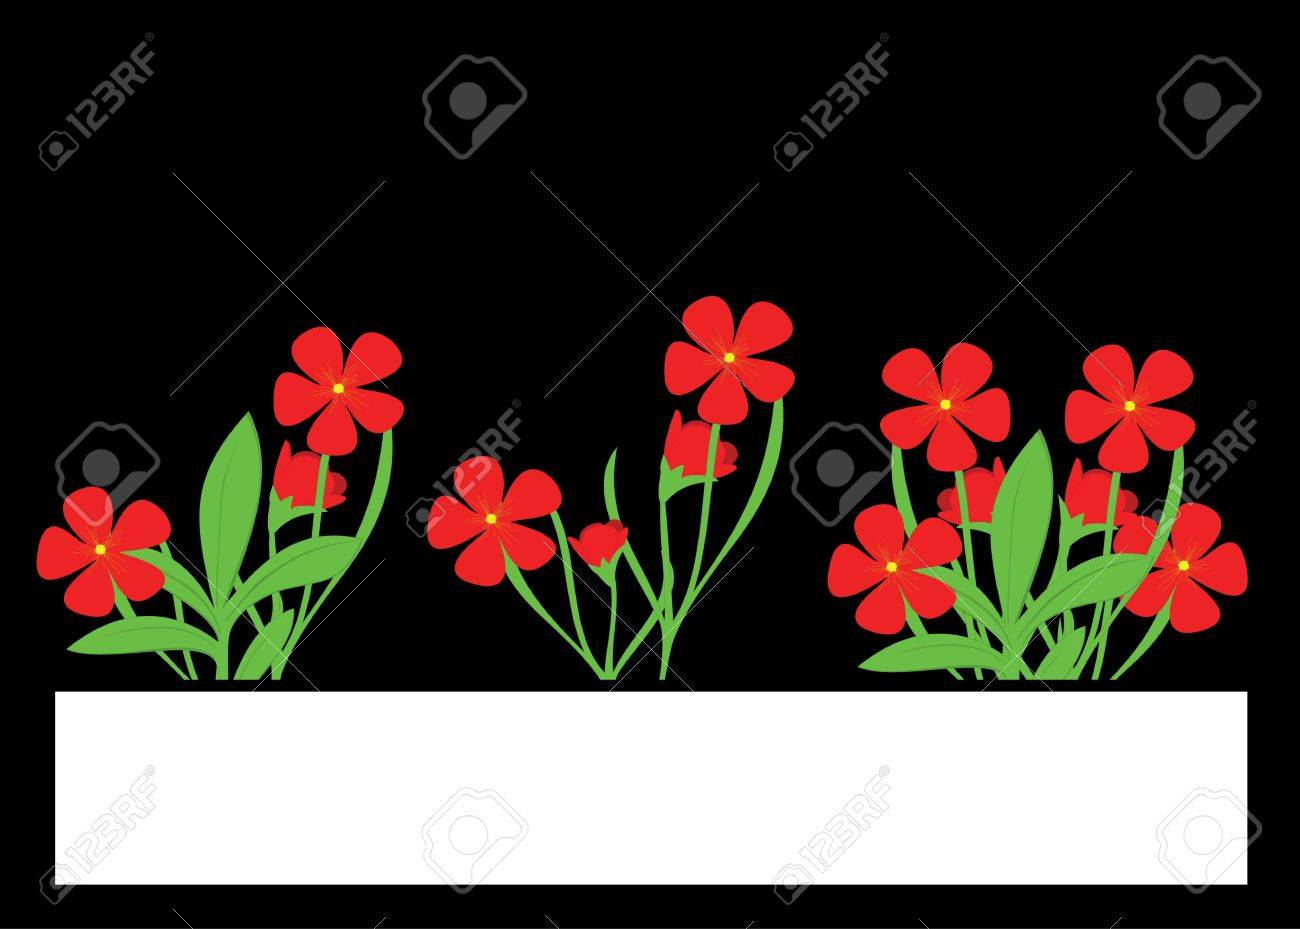 Red Flowers With Blank Space For Writing Onto Royalty Free Cliparts ...